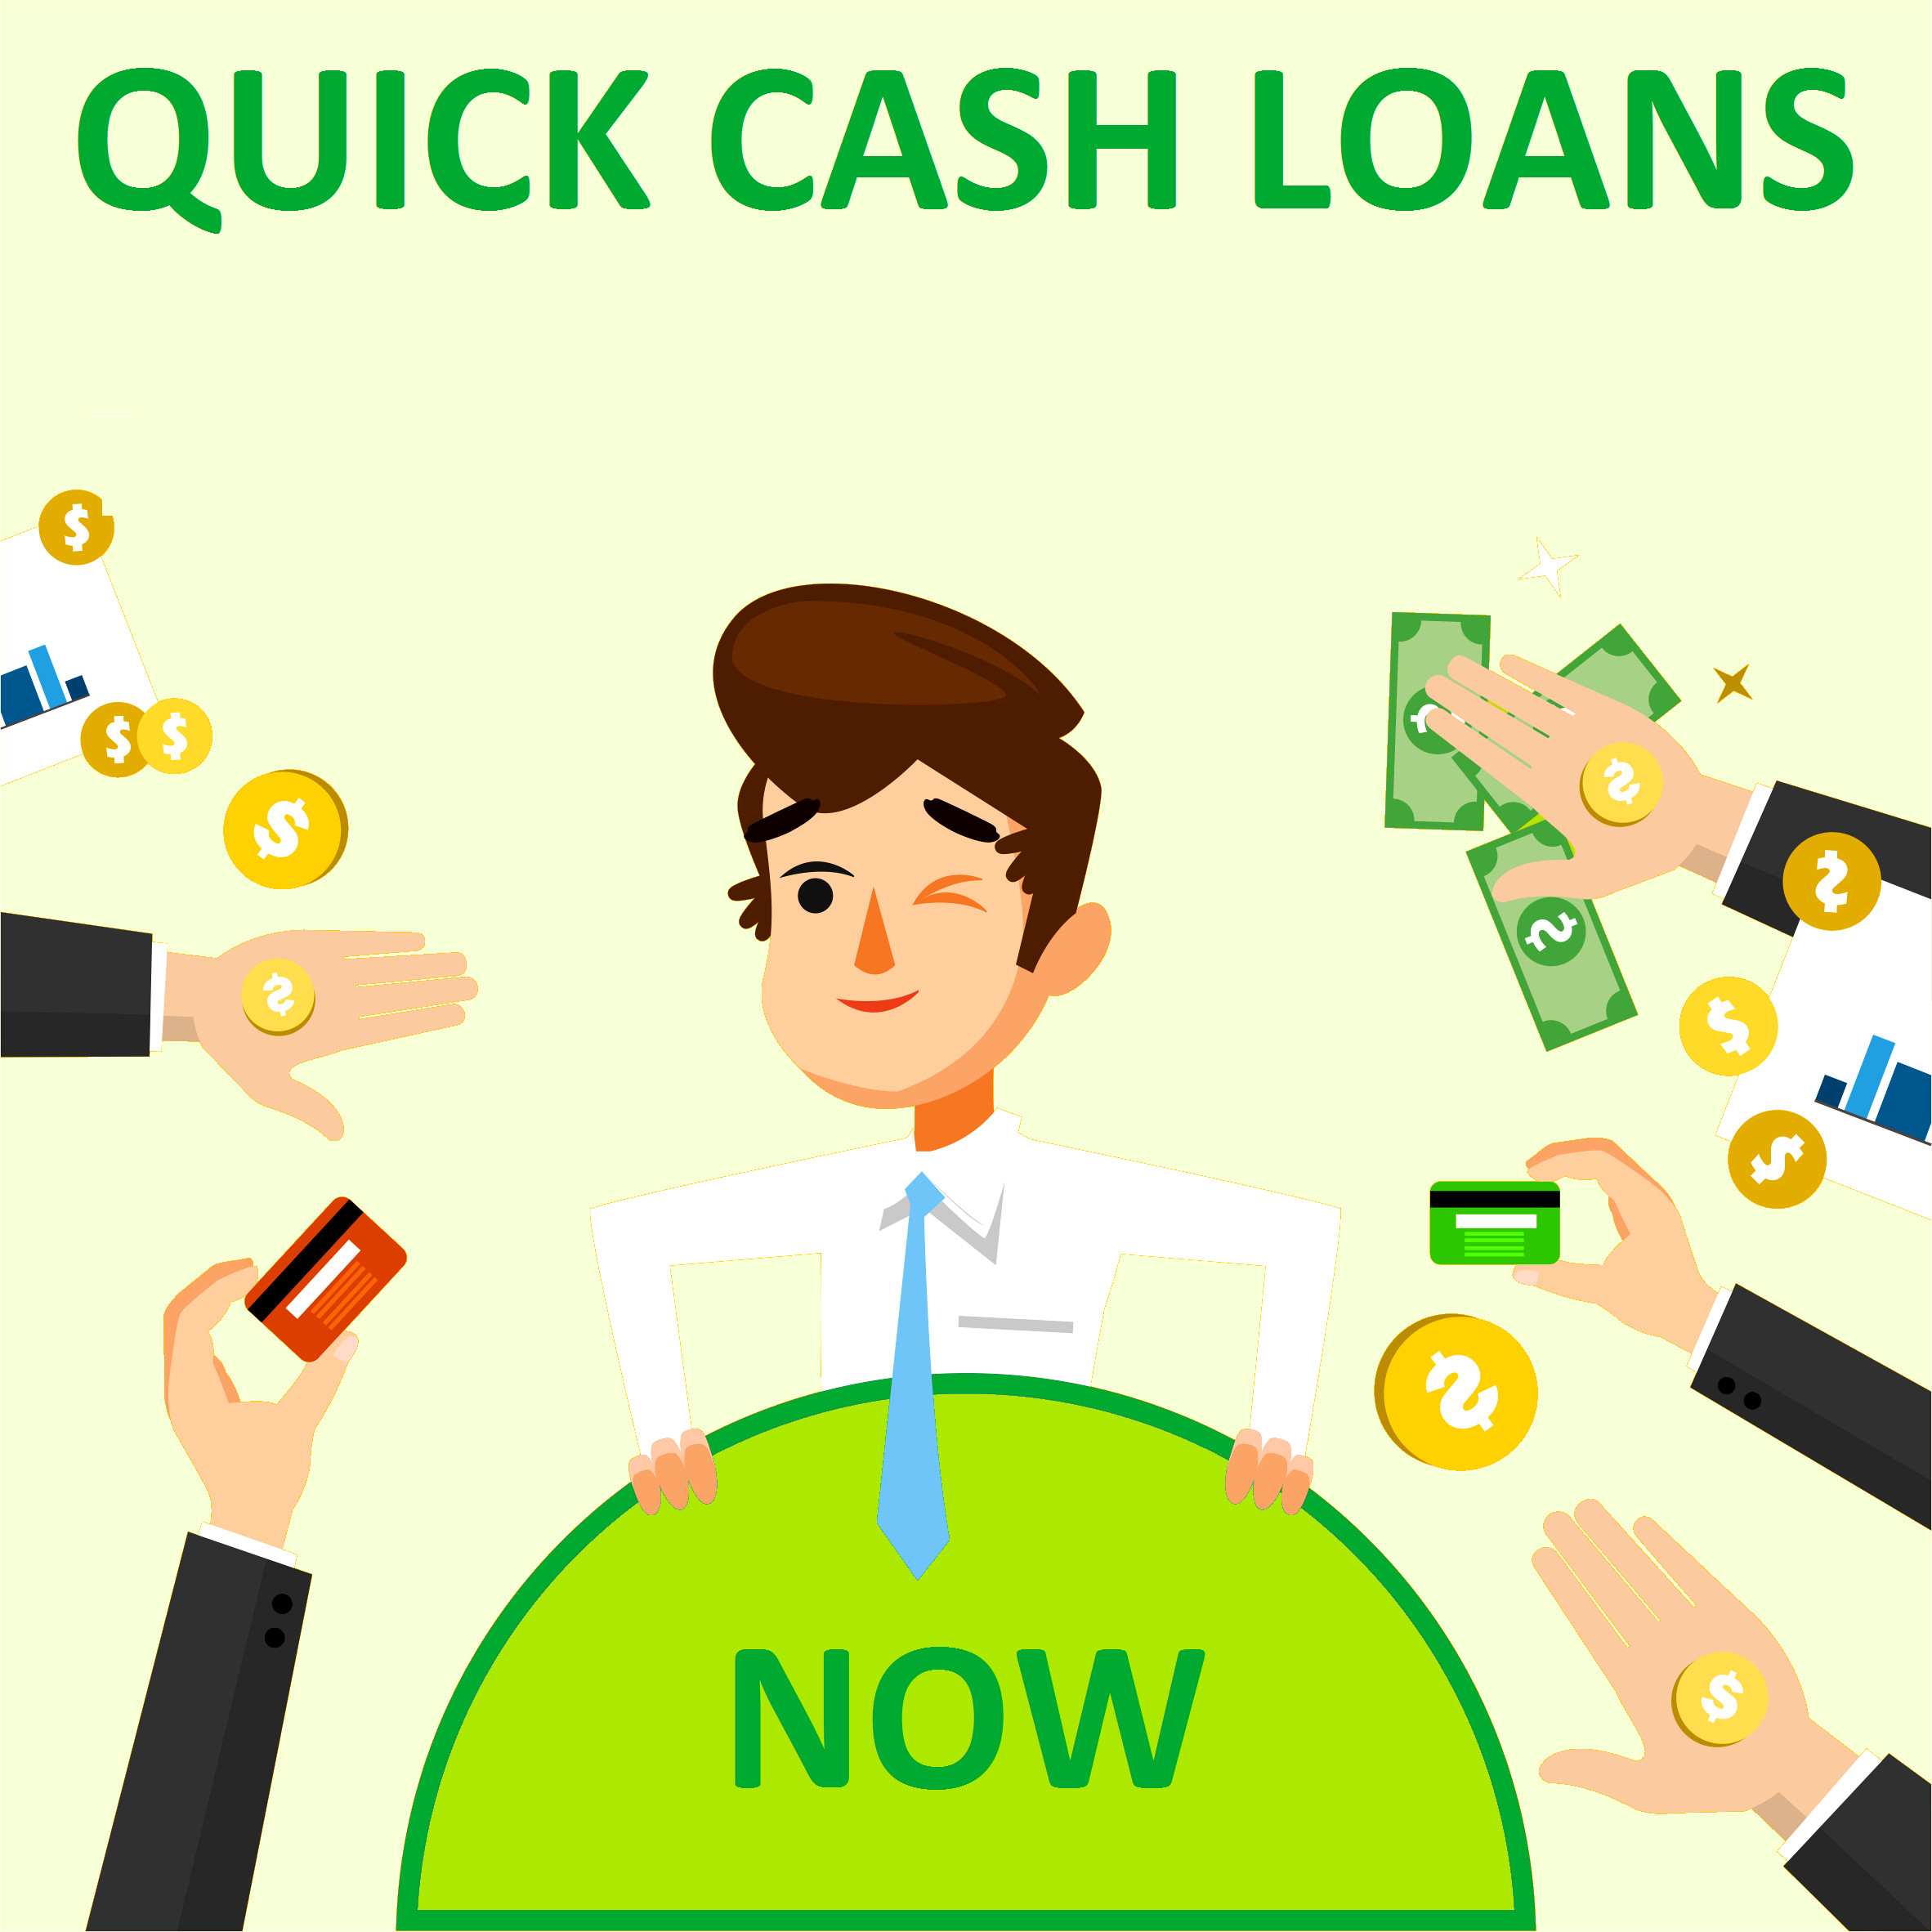 Quick Cash Loans Now